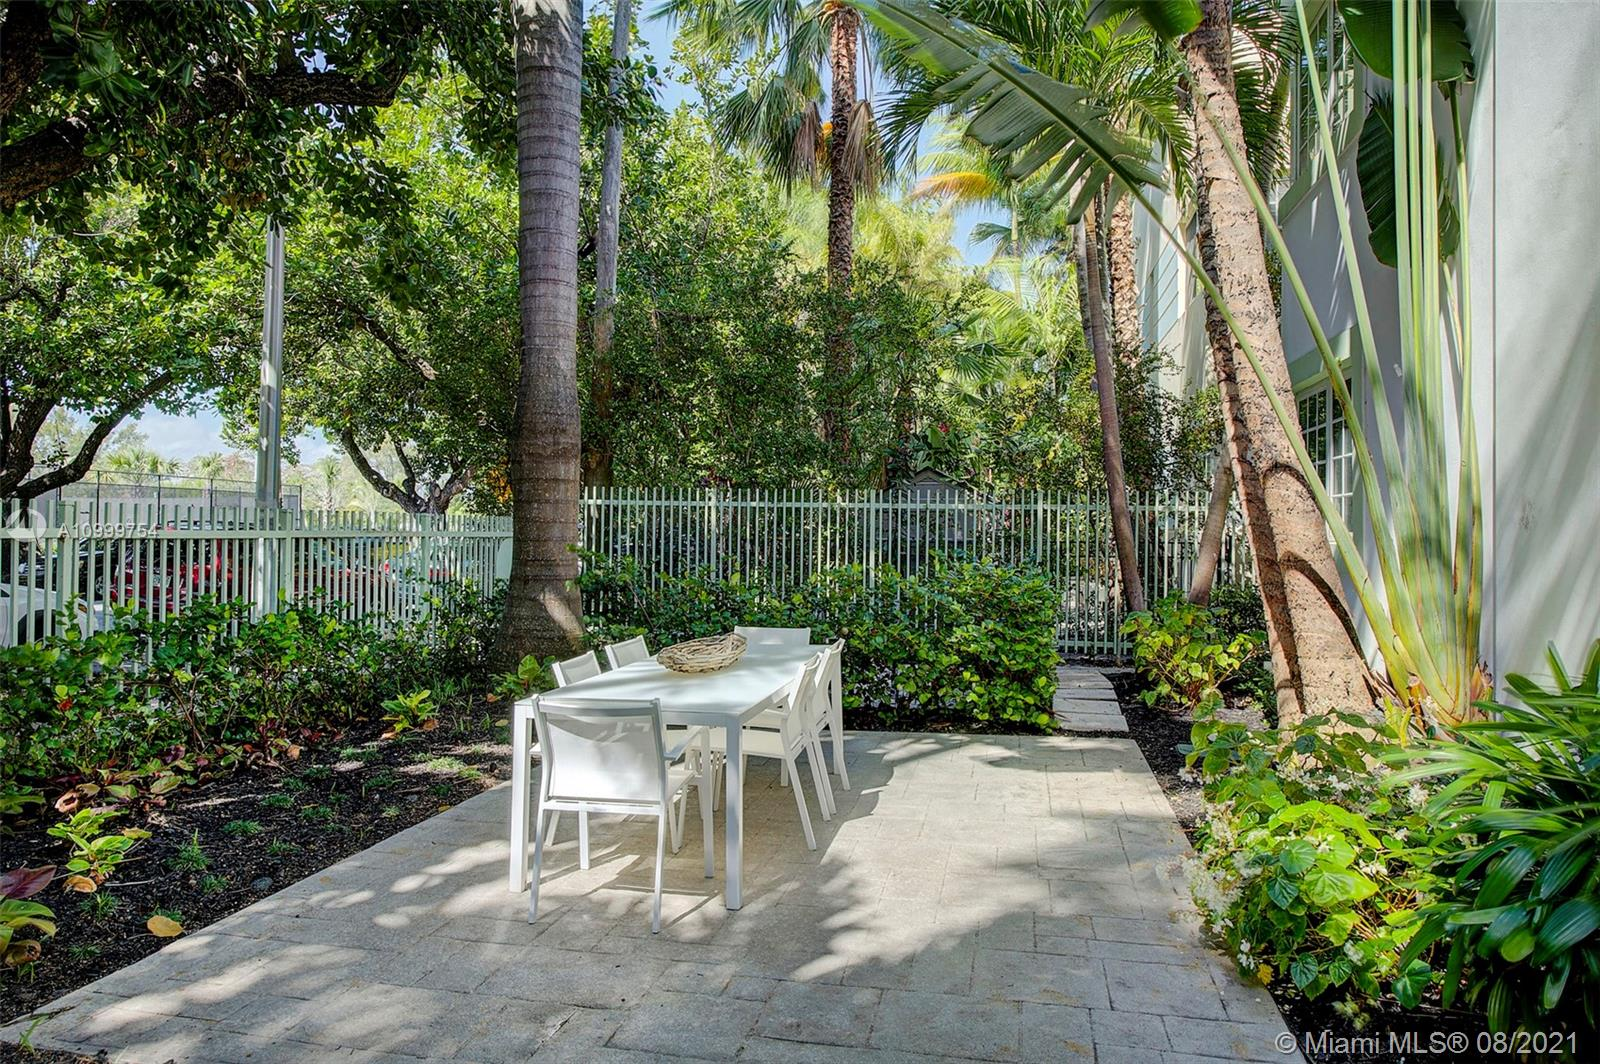 Turnkey unit, with central air, furnished and in the heart of South Beach. Quiet garden courtyard view. Impact windows, original wood floors, kitchen/bath renovation, new paint and fixtures. 